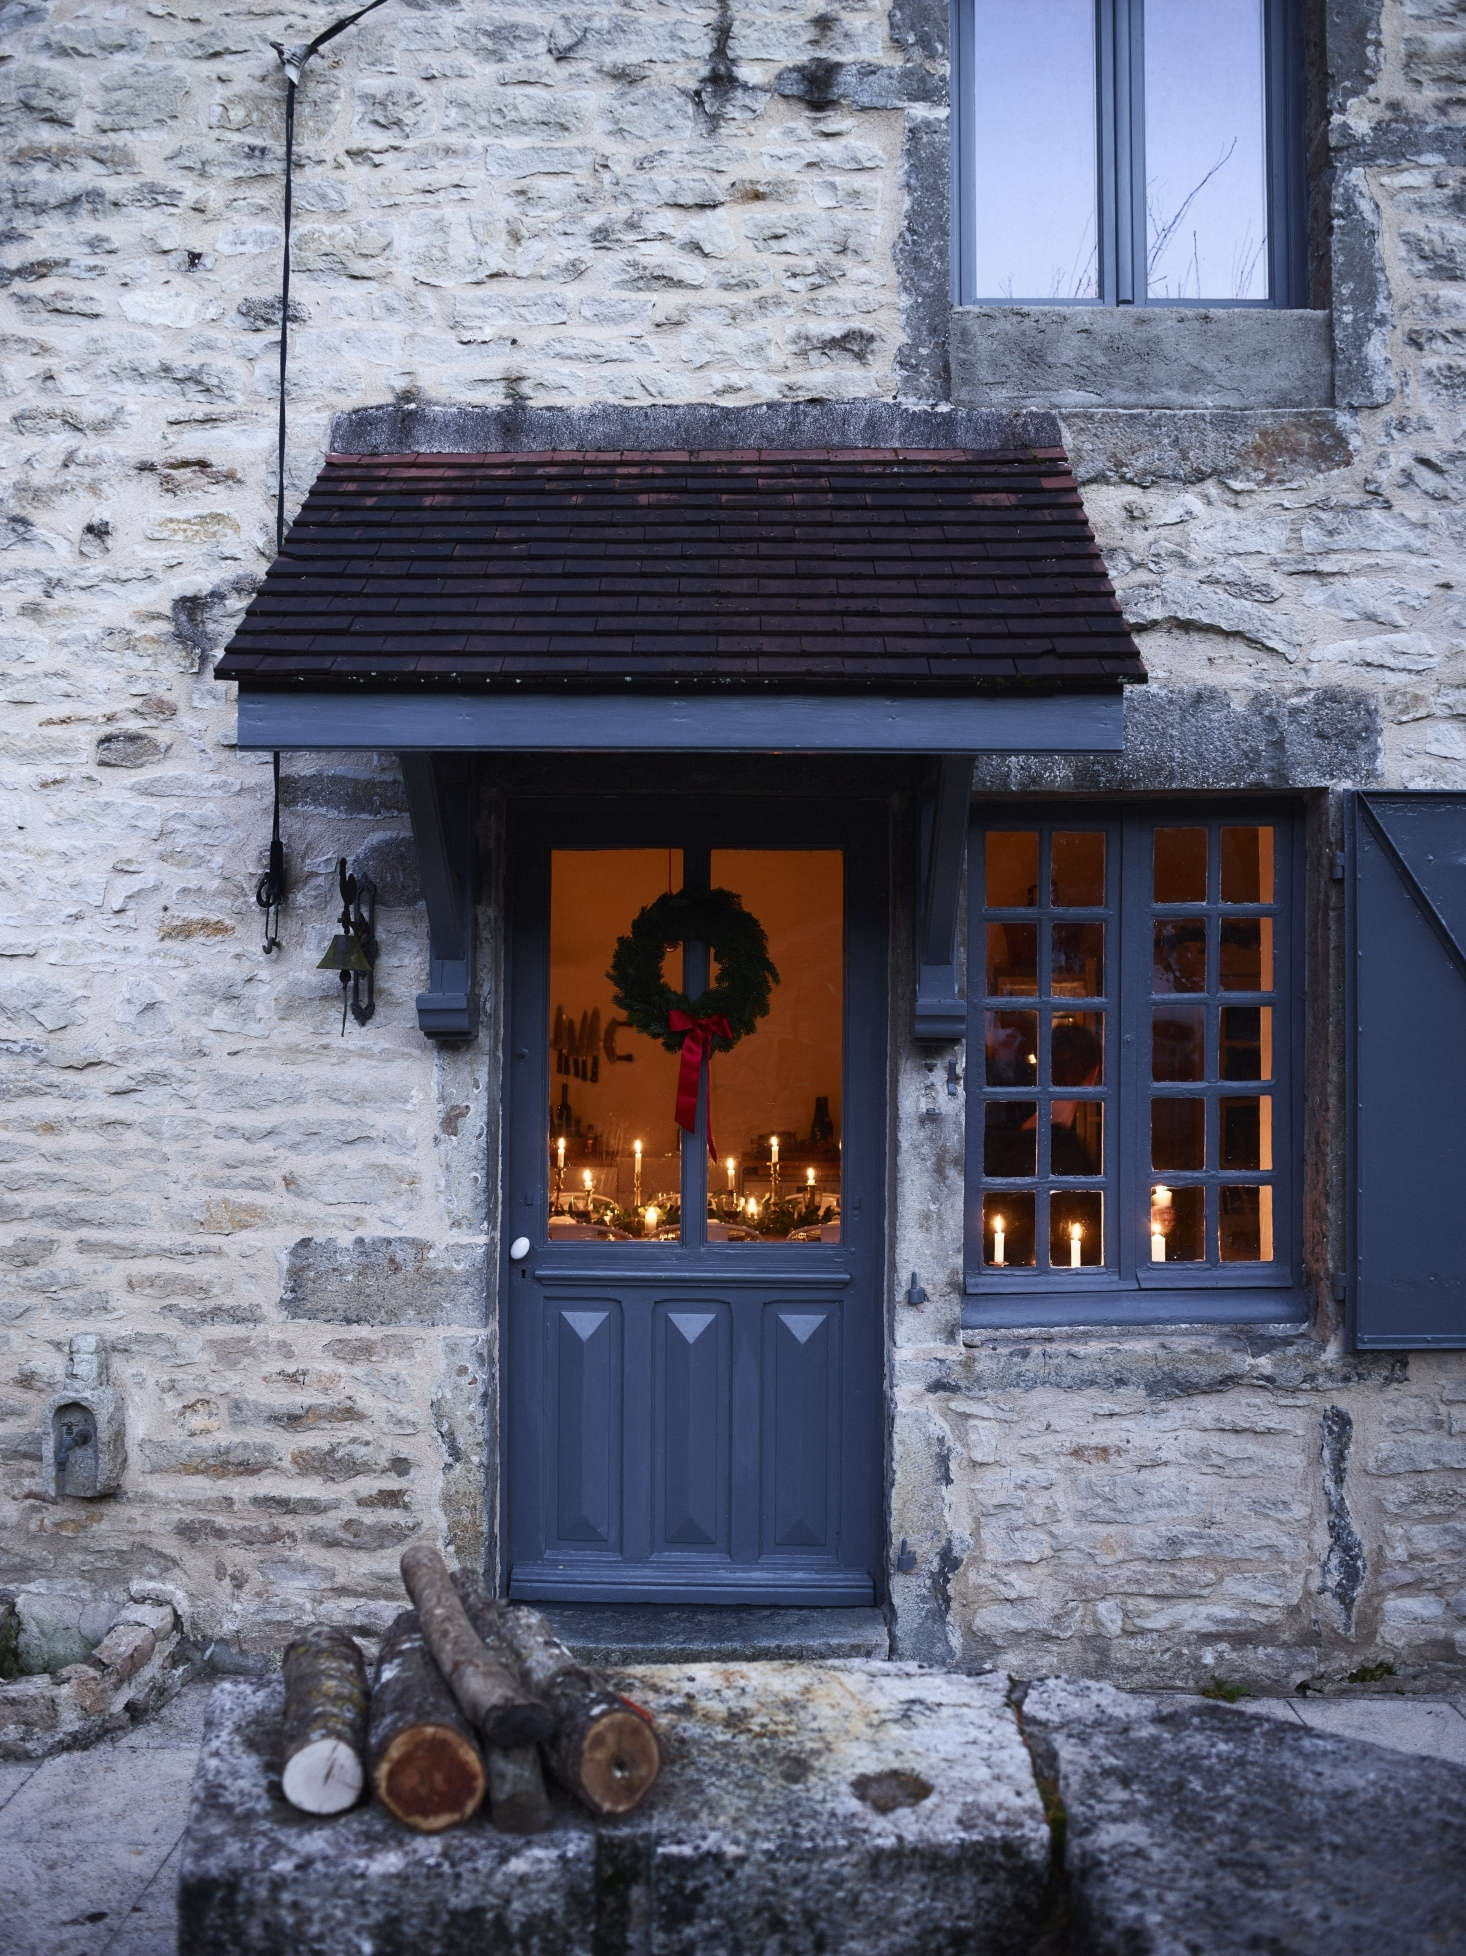 PhotographbyAnson Smart fromChristmas in Burgundy: At Home with the Expat Family Behind the Cook's Atelier.